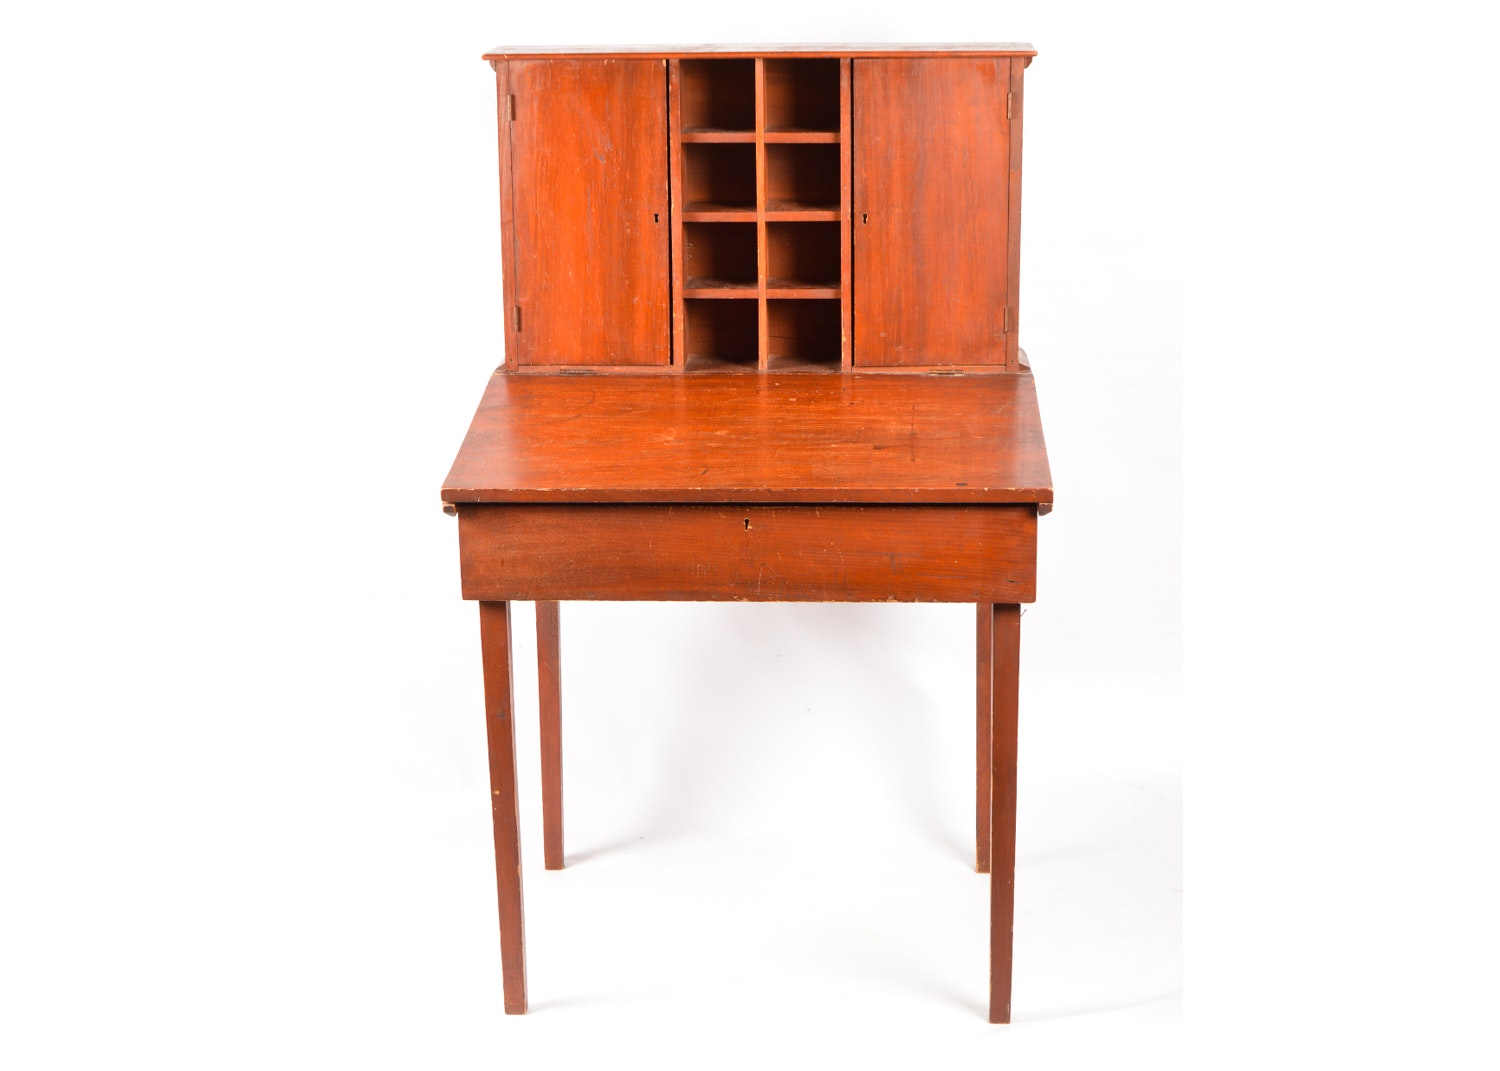 Rustic Pine Slant Top Writing Desk with Cabinet, 19th Century